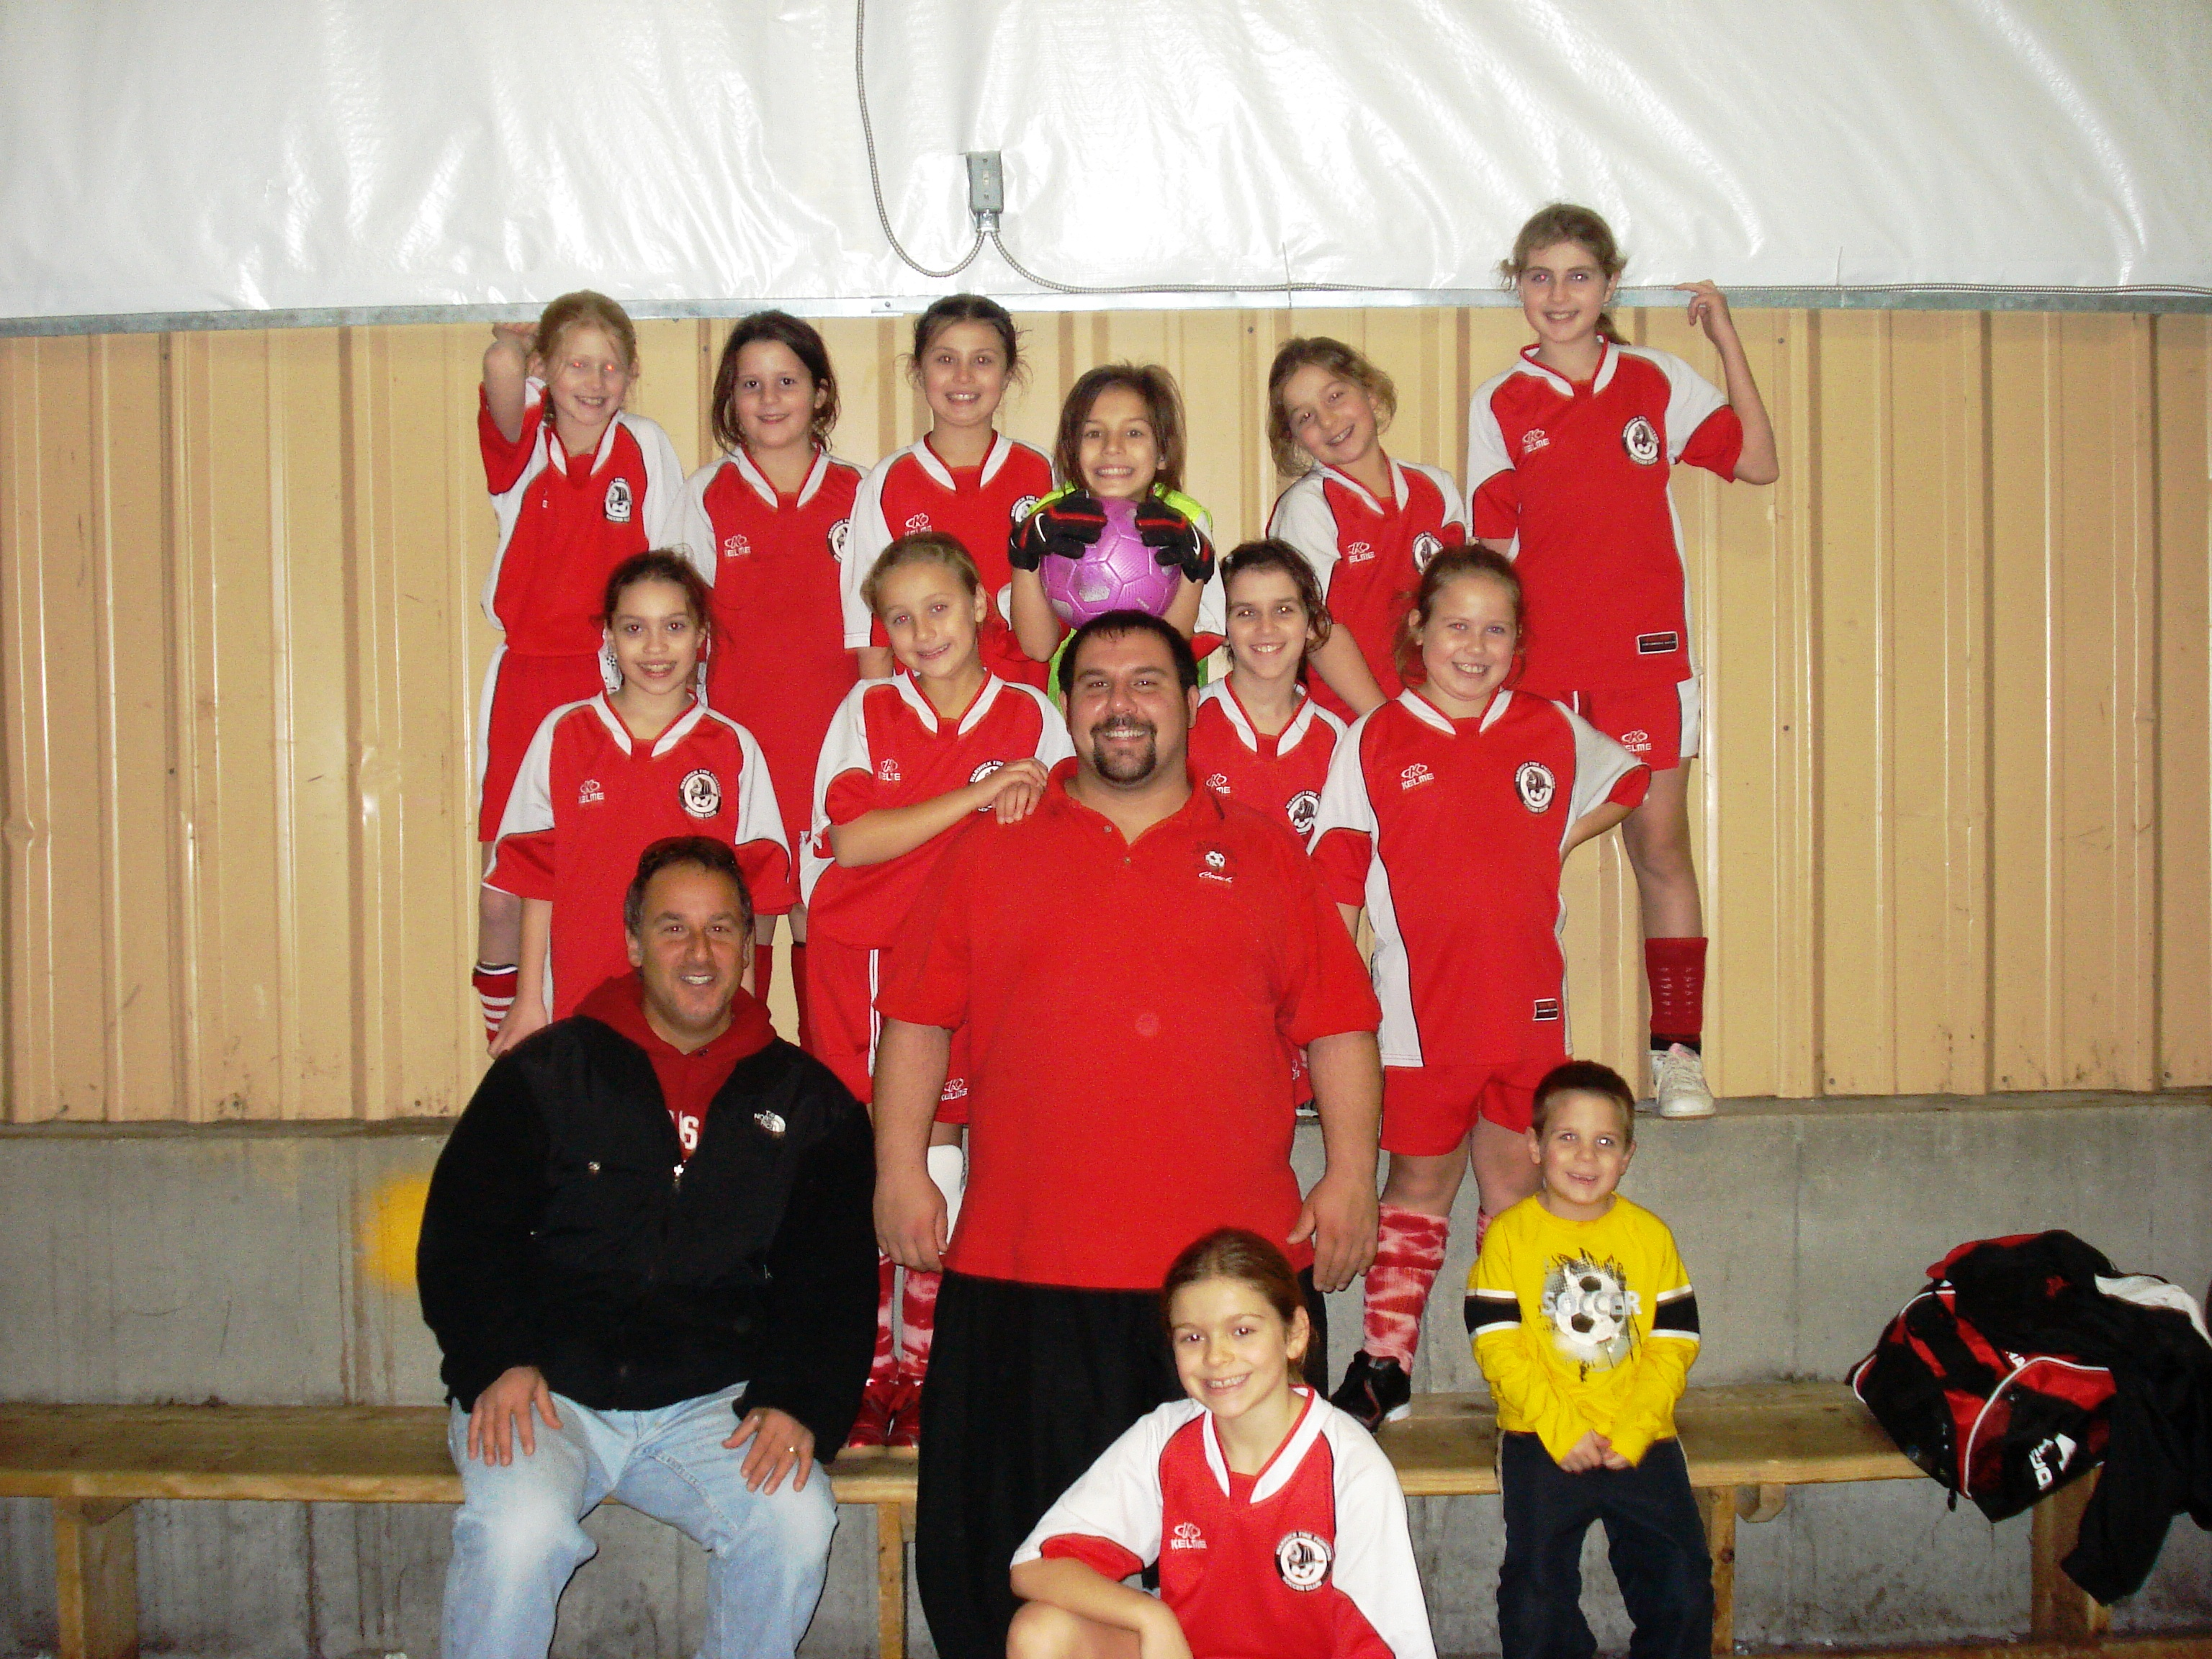 U10 Girls Champs - 2007